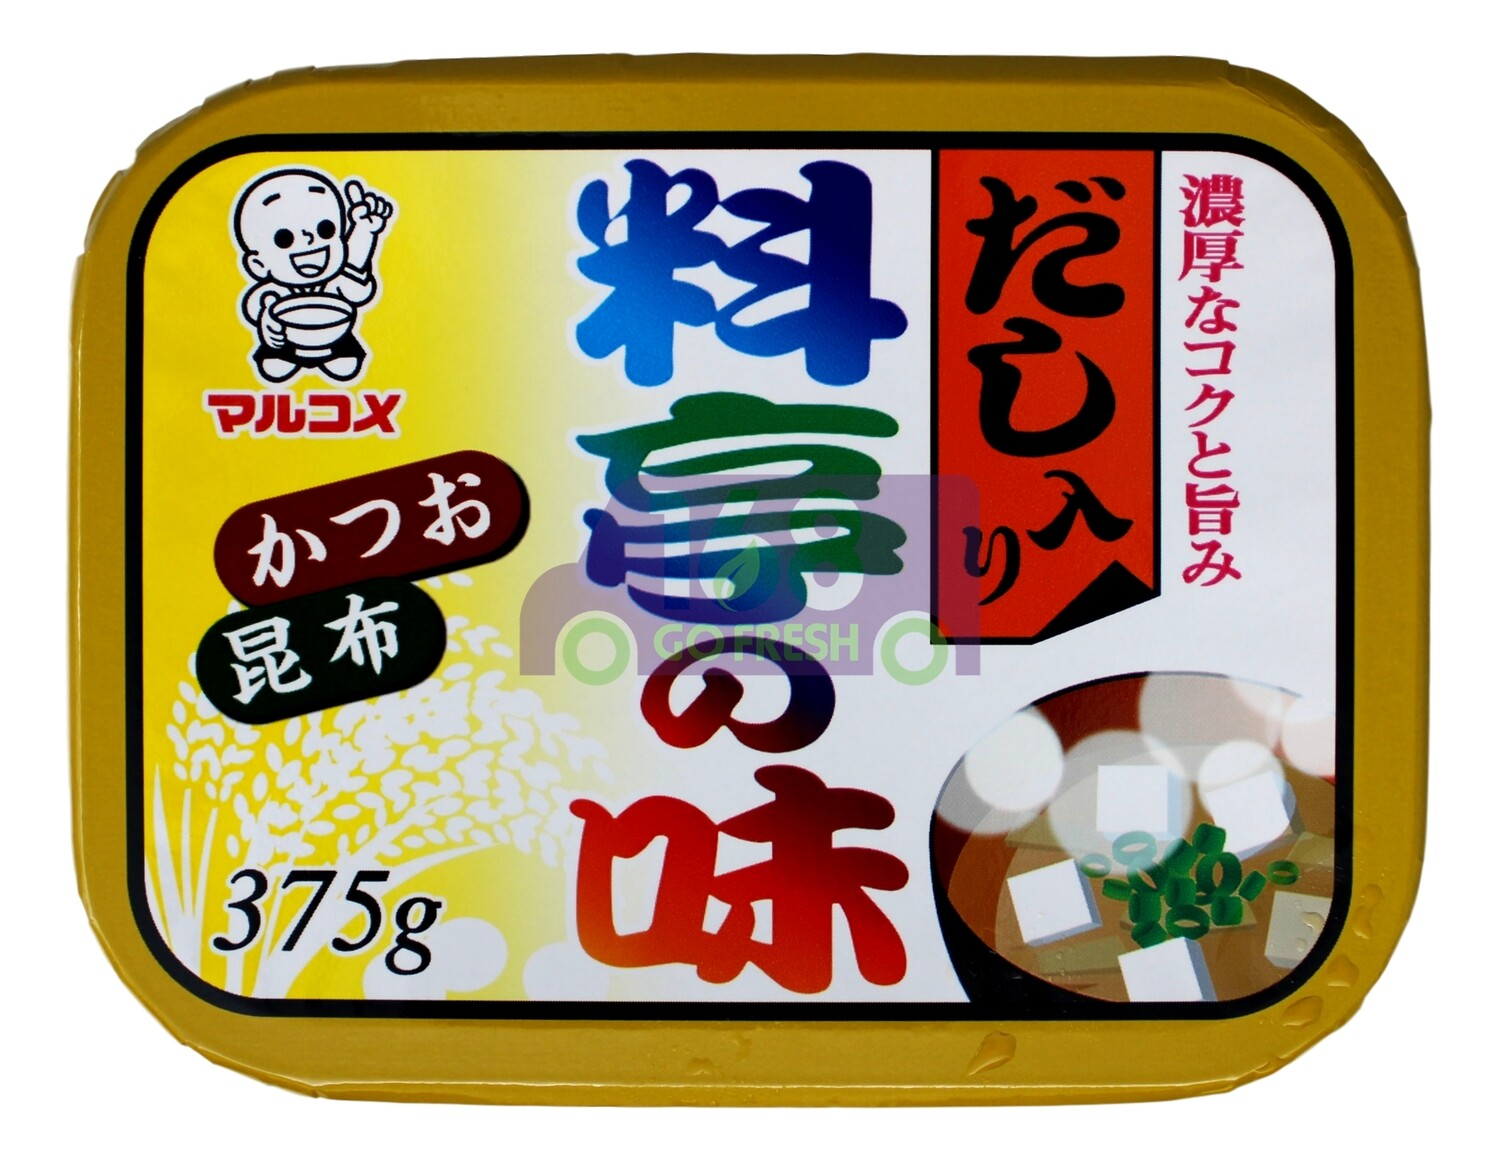 MARUKOME RYOTEI NO AJI MISO SOYBEAN PASTE 日本 MARUKOME RYOTEI 味增